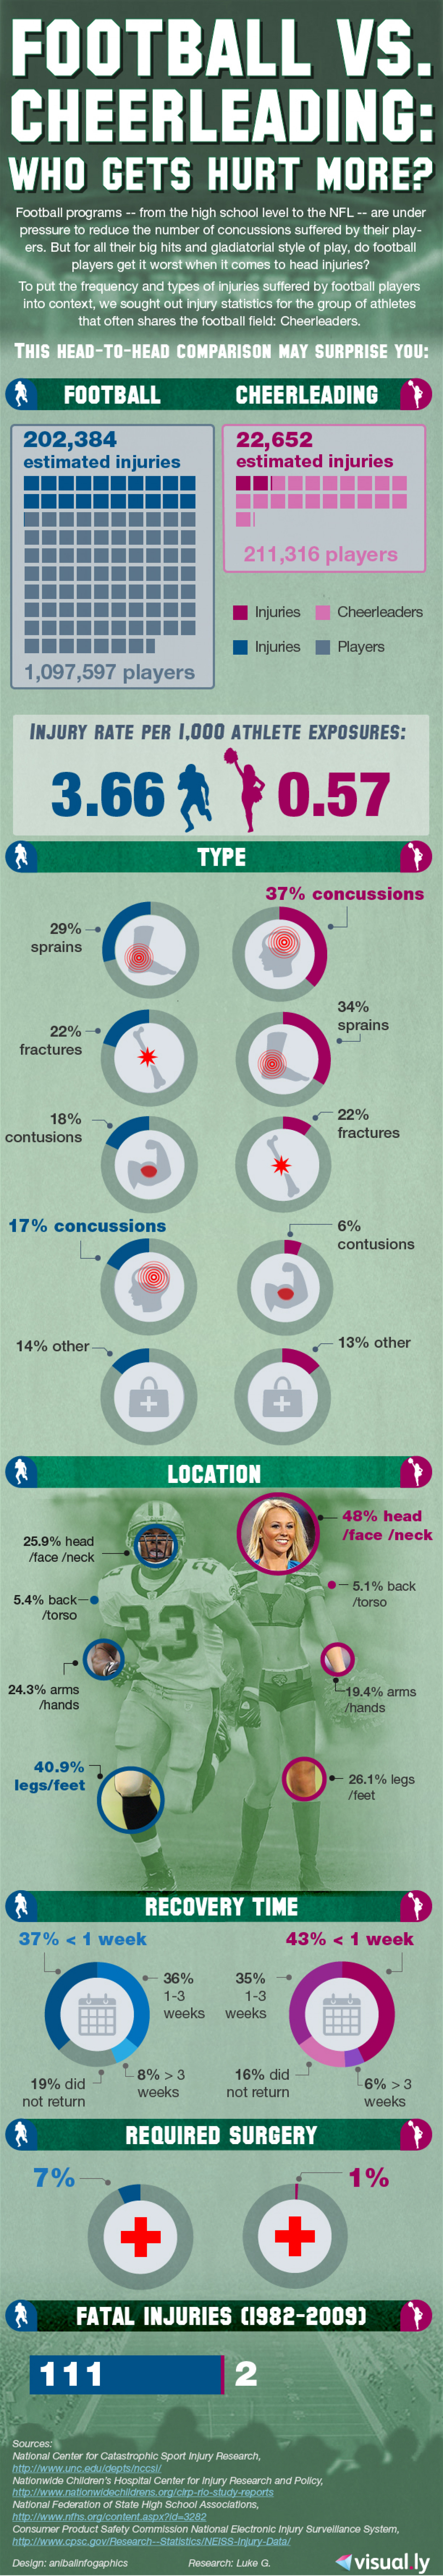 Football vs. cheerleading: Who gets hurt more? Infographic